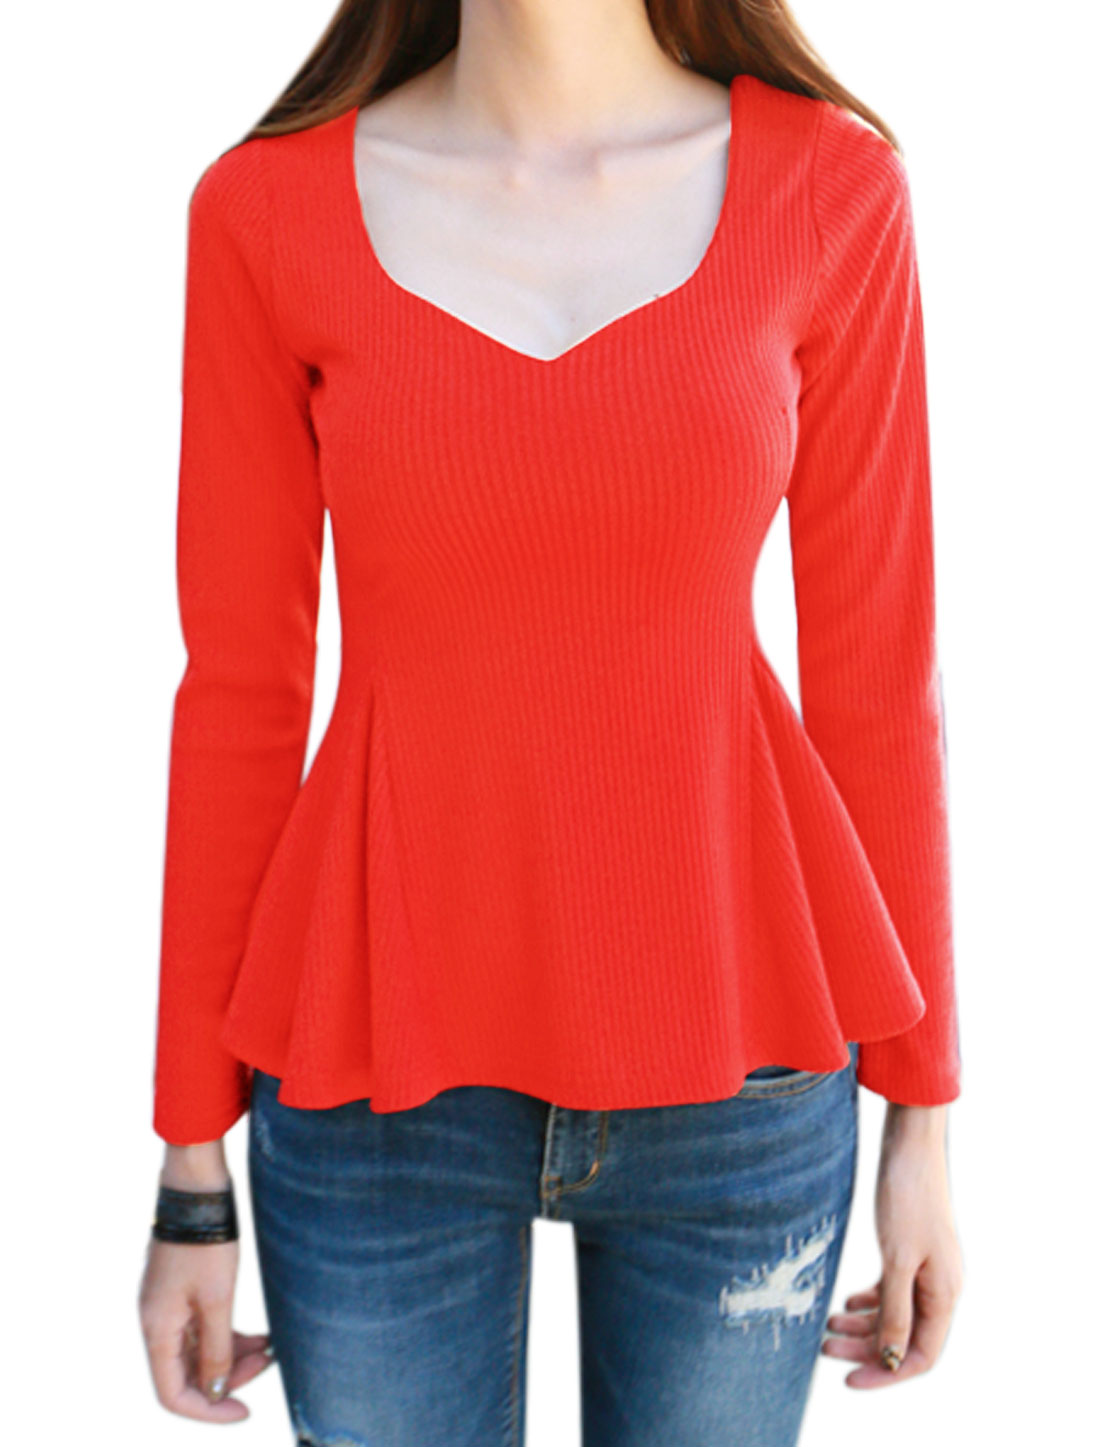 Women Long Sleeves Crossover Back Ribbed Slim Fit Peplum Top Red M